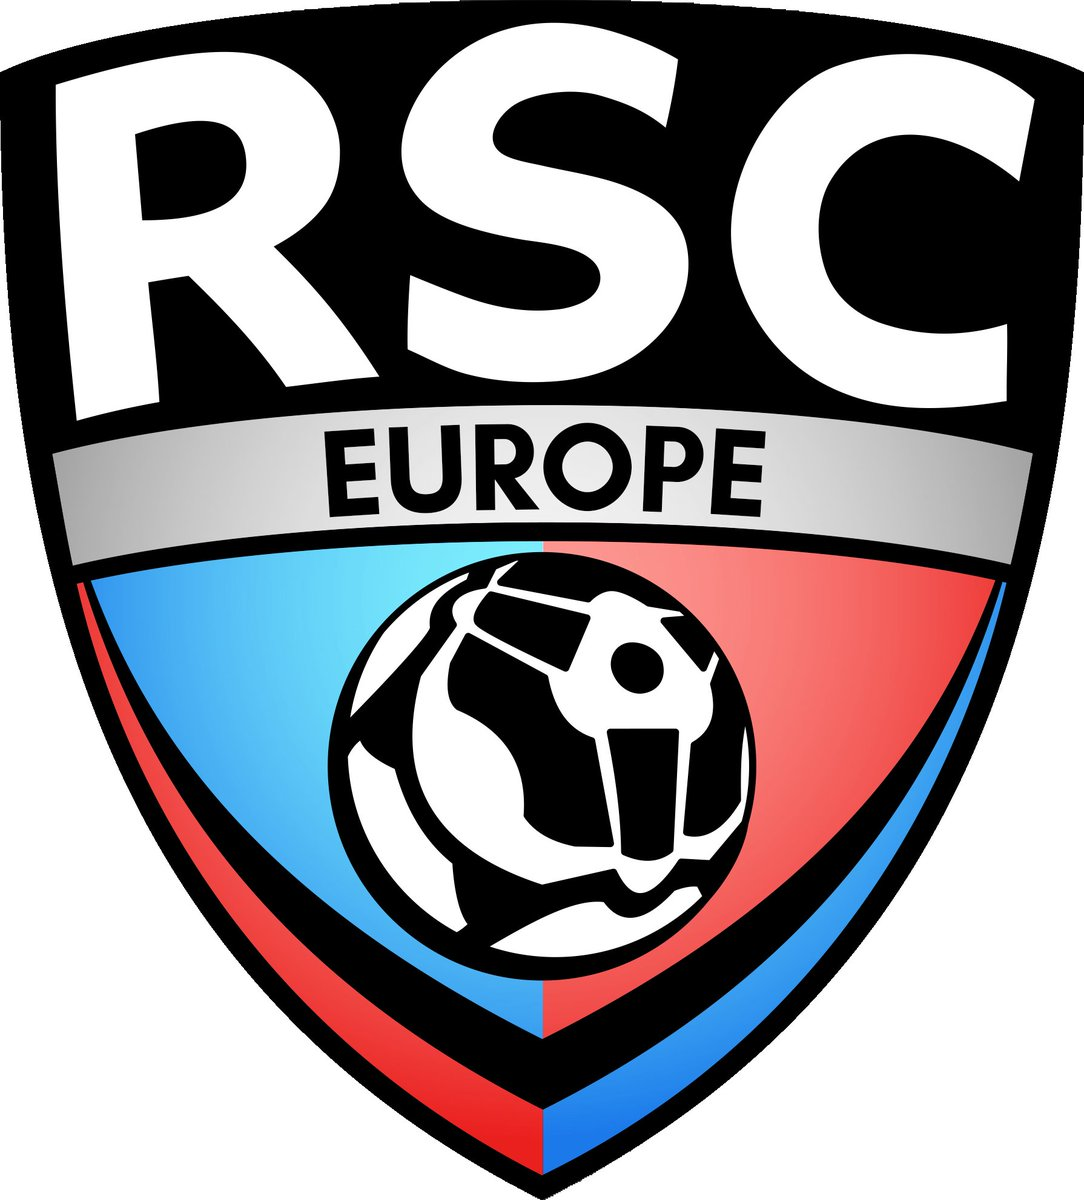 RocketSoccarConfederationEU announces Season 5 with signups opening on 13th July til 27th Aug.Its a 3v3 draft league for all platforms.Get scouted for a team with combines.Take chances to be on streamed matches.Take part in the league or join our discord https://t.co/OlvOouOiWj https://t.co/aKUGLsV41n